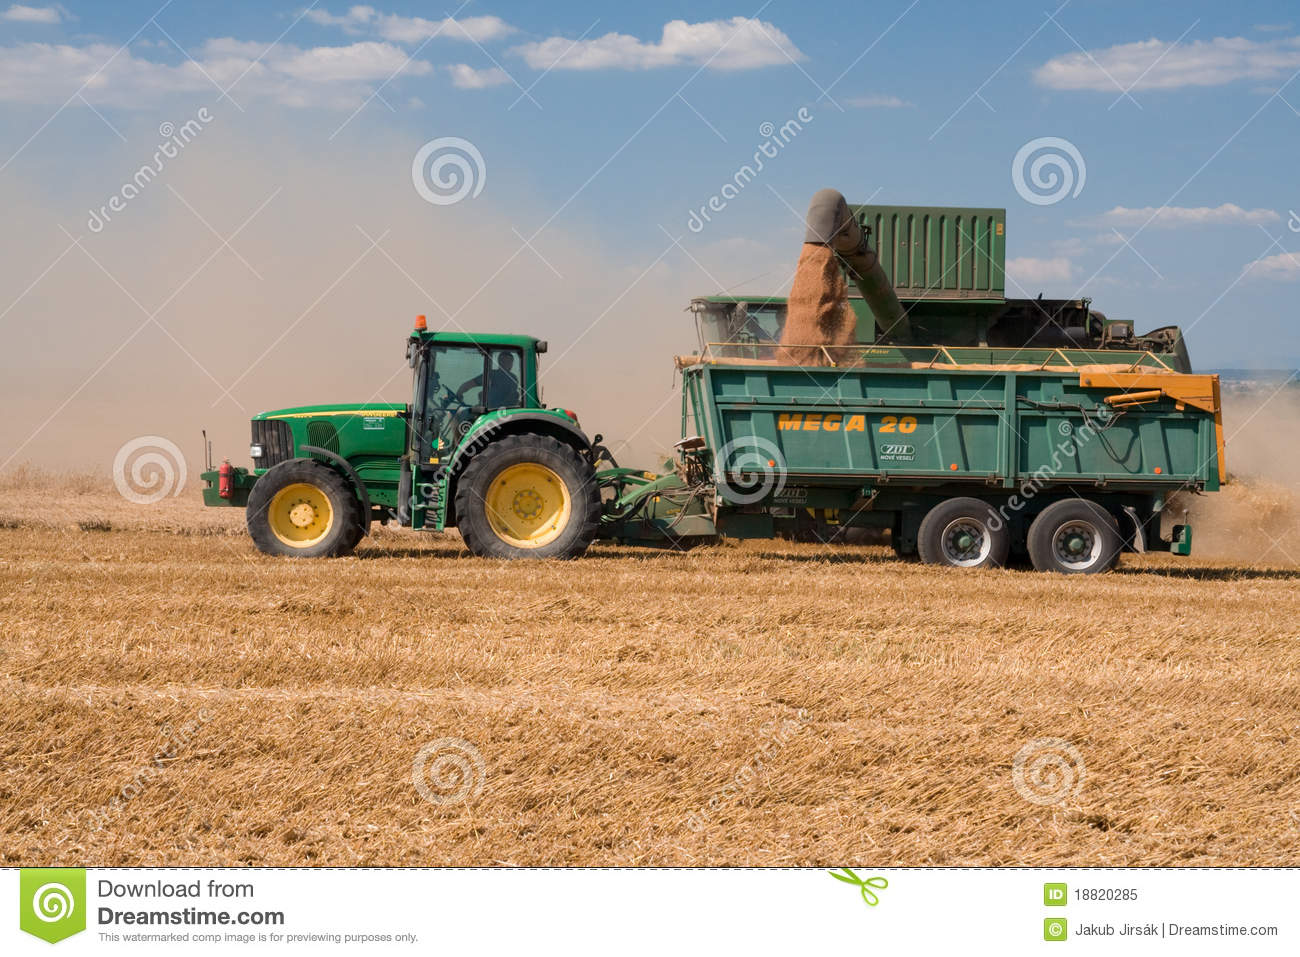 John Deere Combines In The Field | www.pixshark.com ...